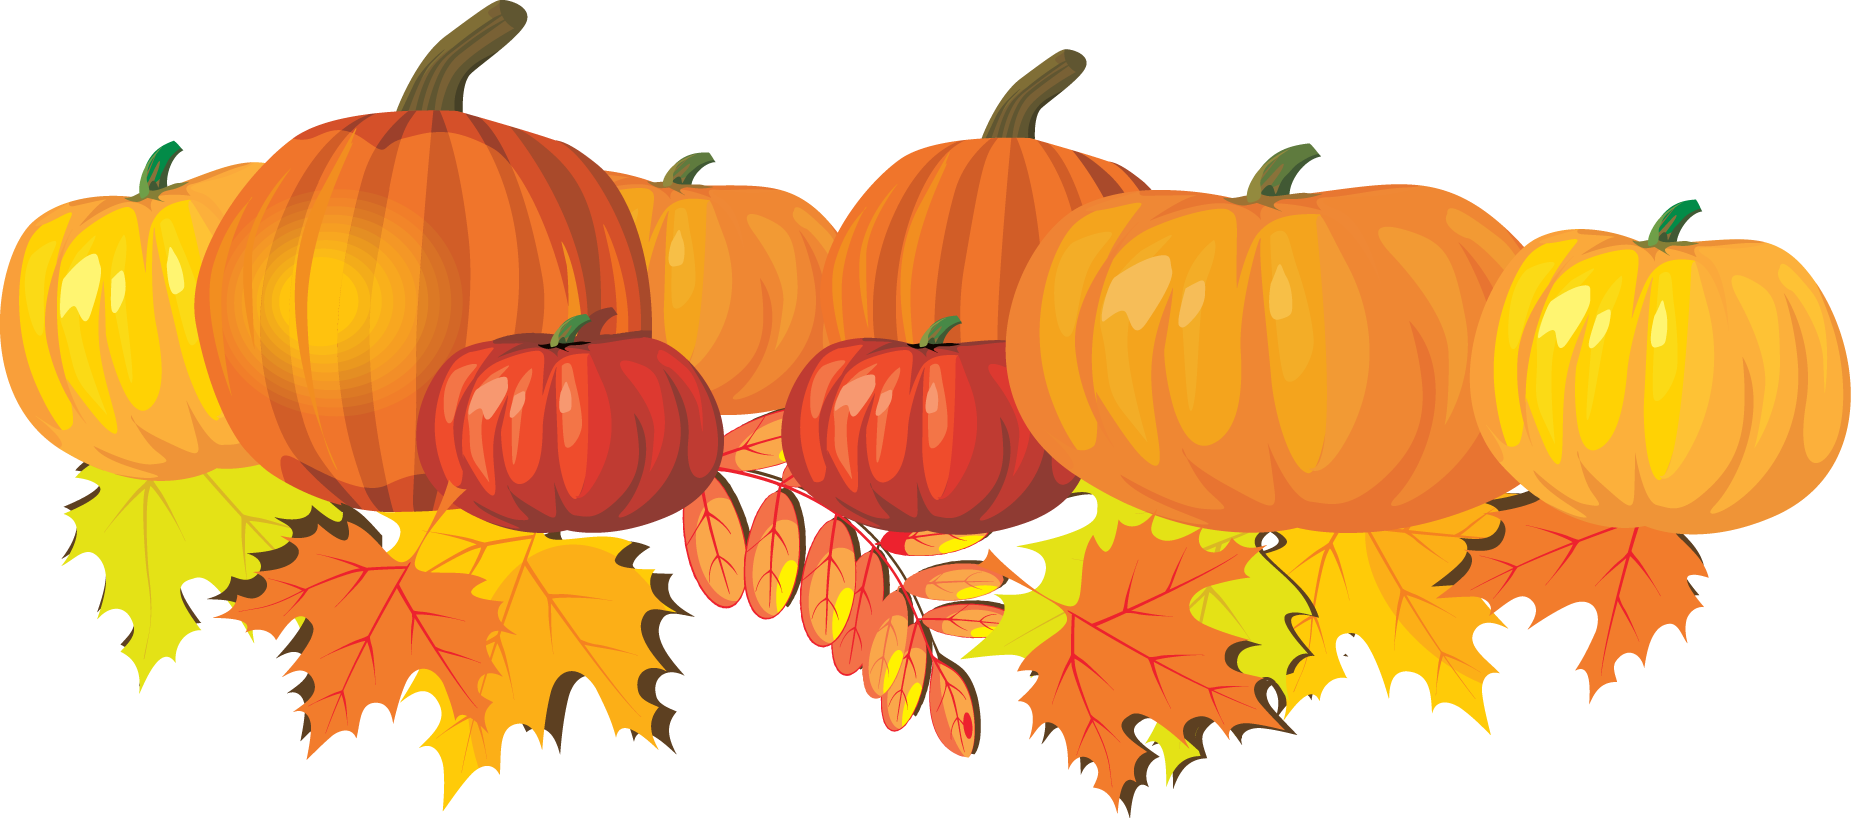 vintage pumpkin clip art - photo #22